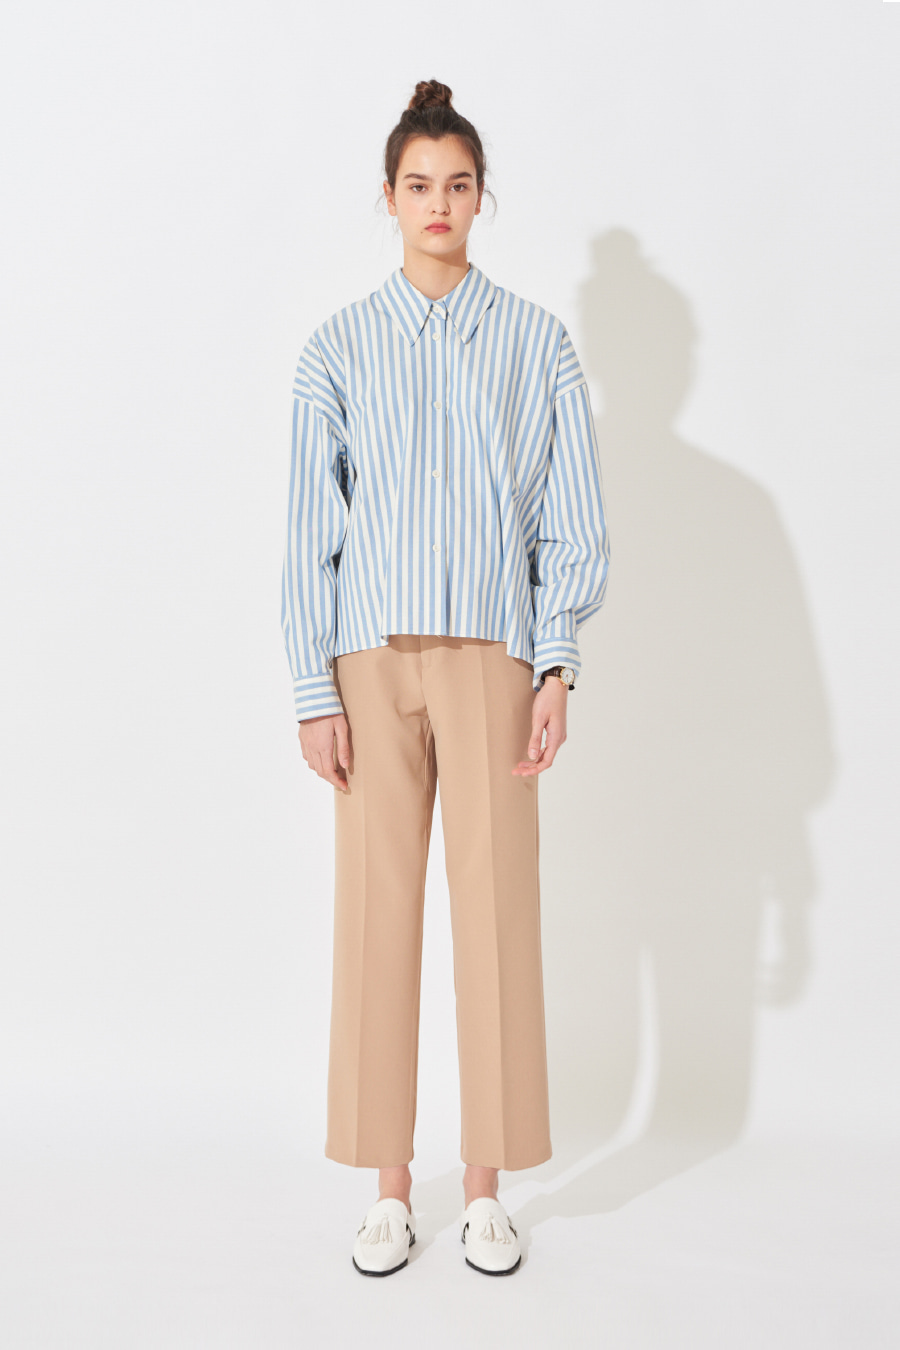 유라고 URAGO Jane Parky striped shirt